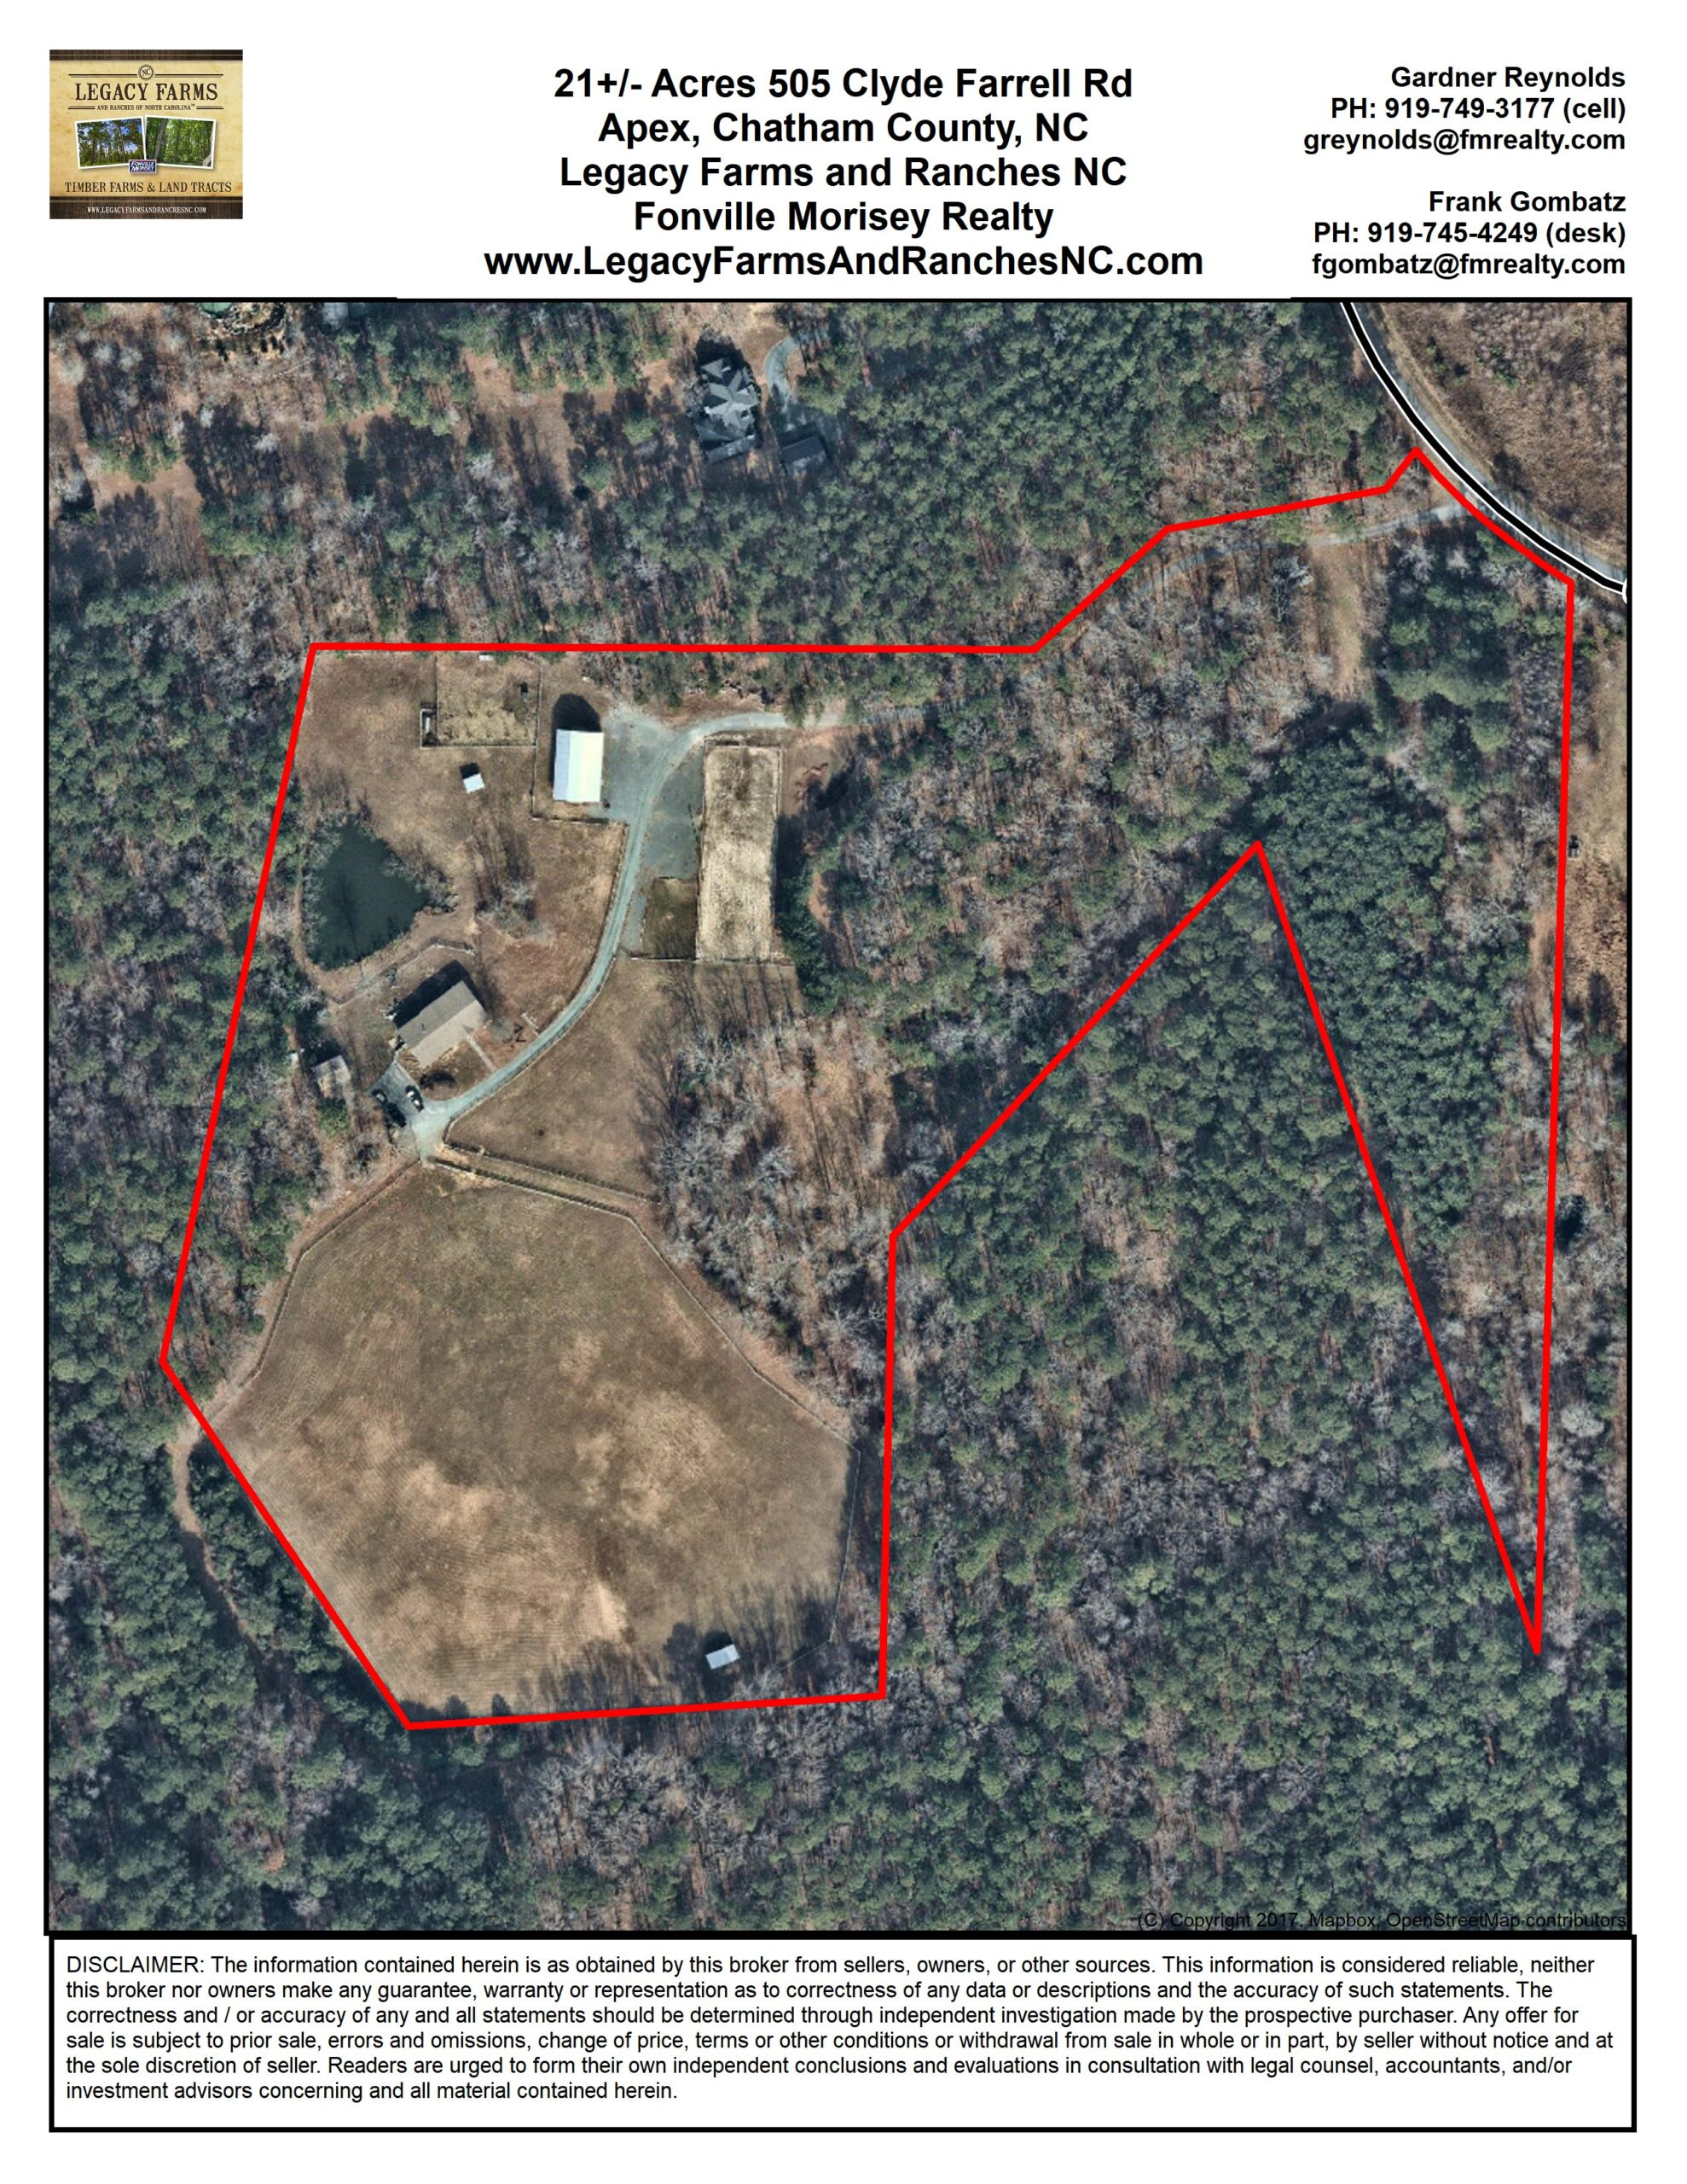 505 Clyde Farrell Road Aerial Map